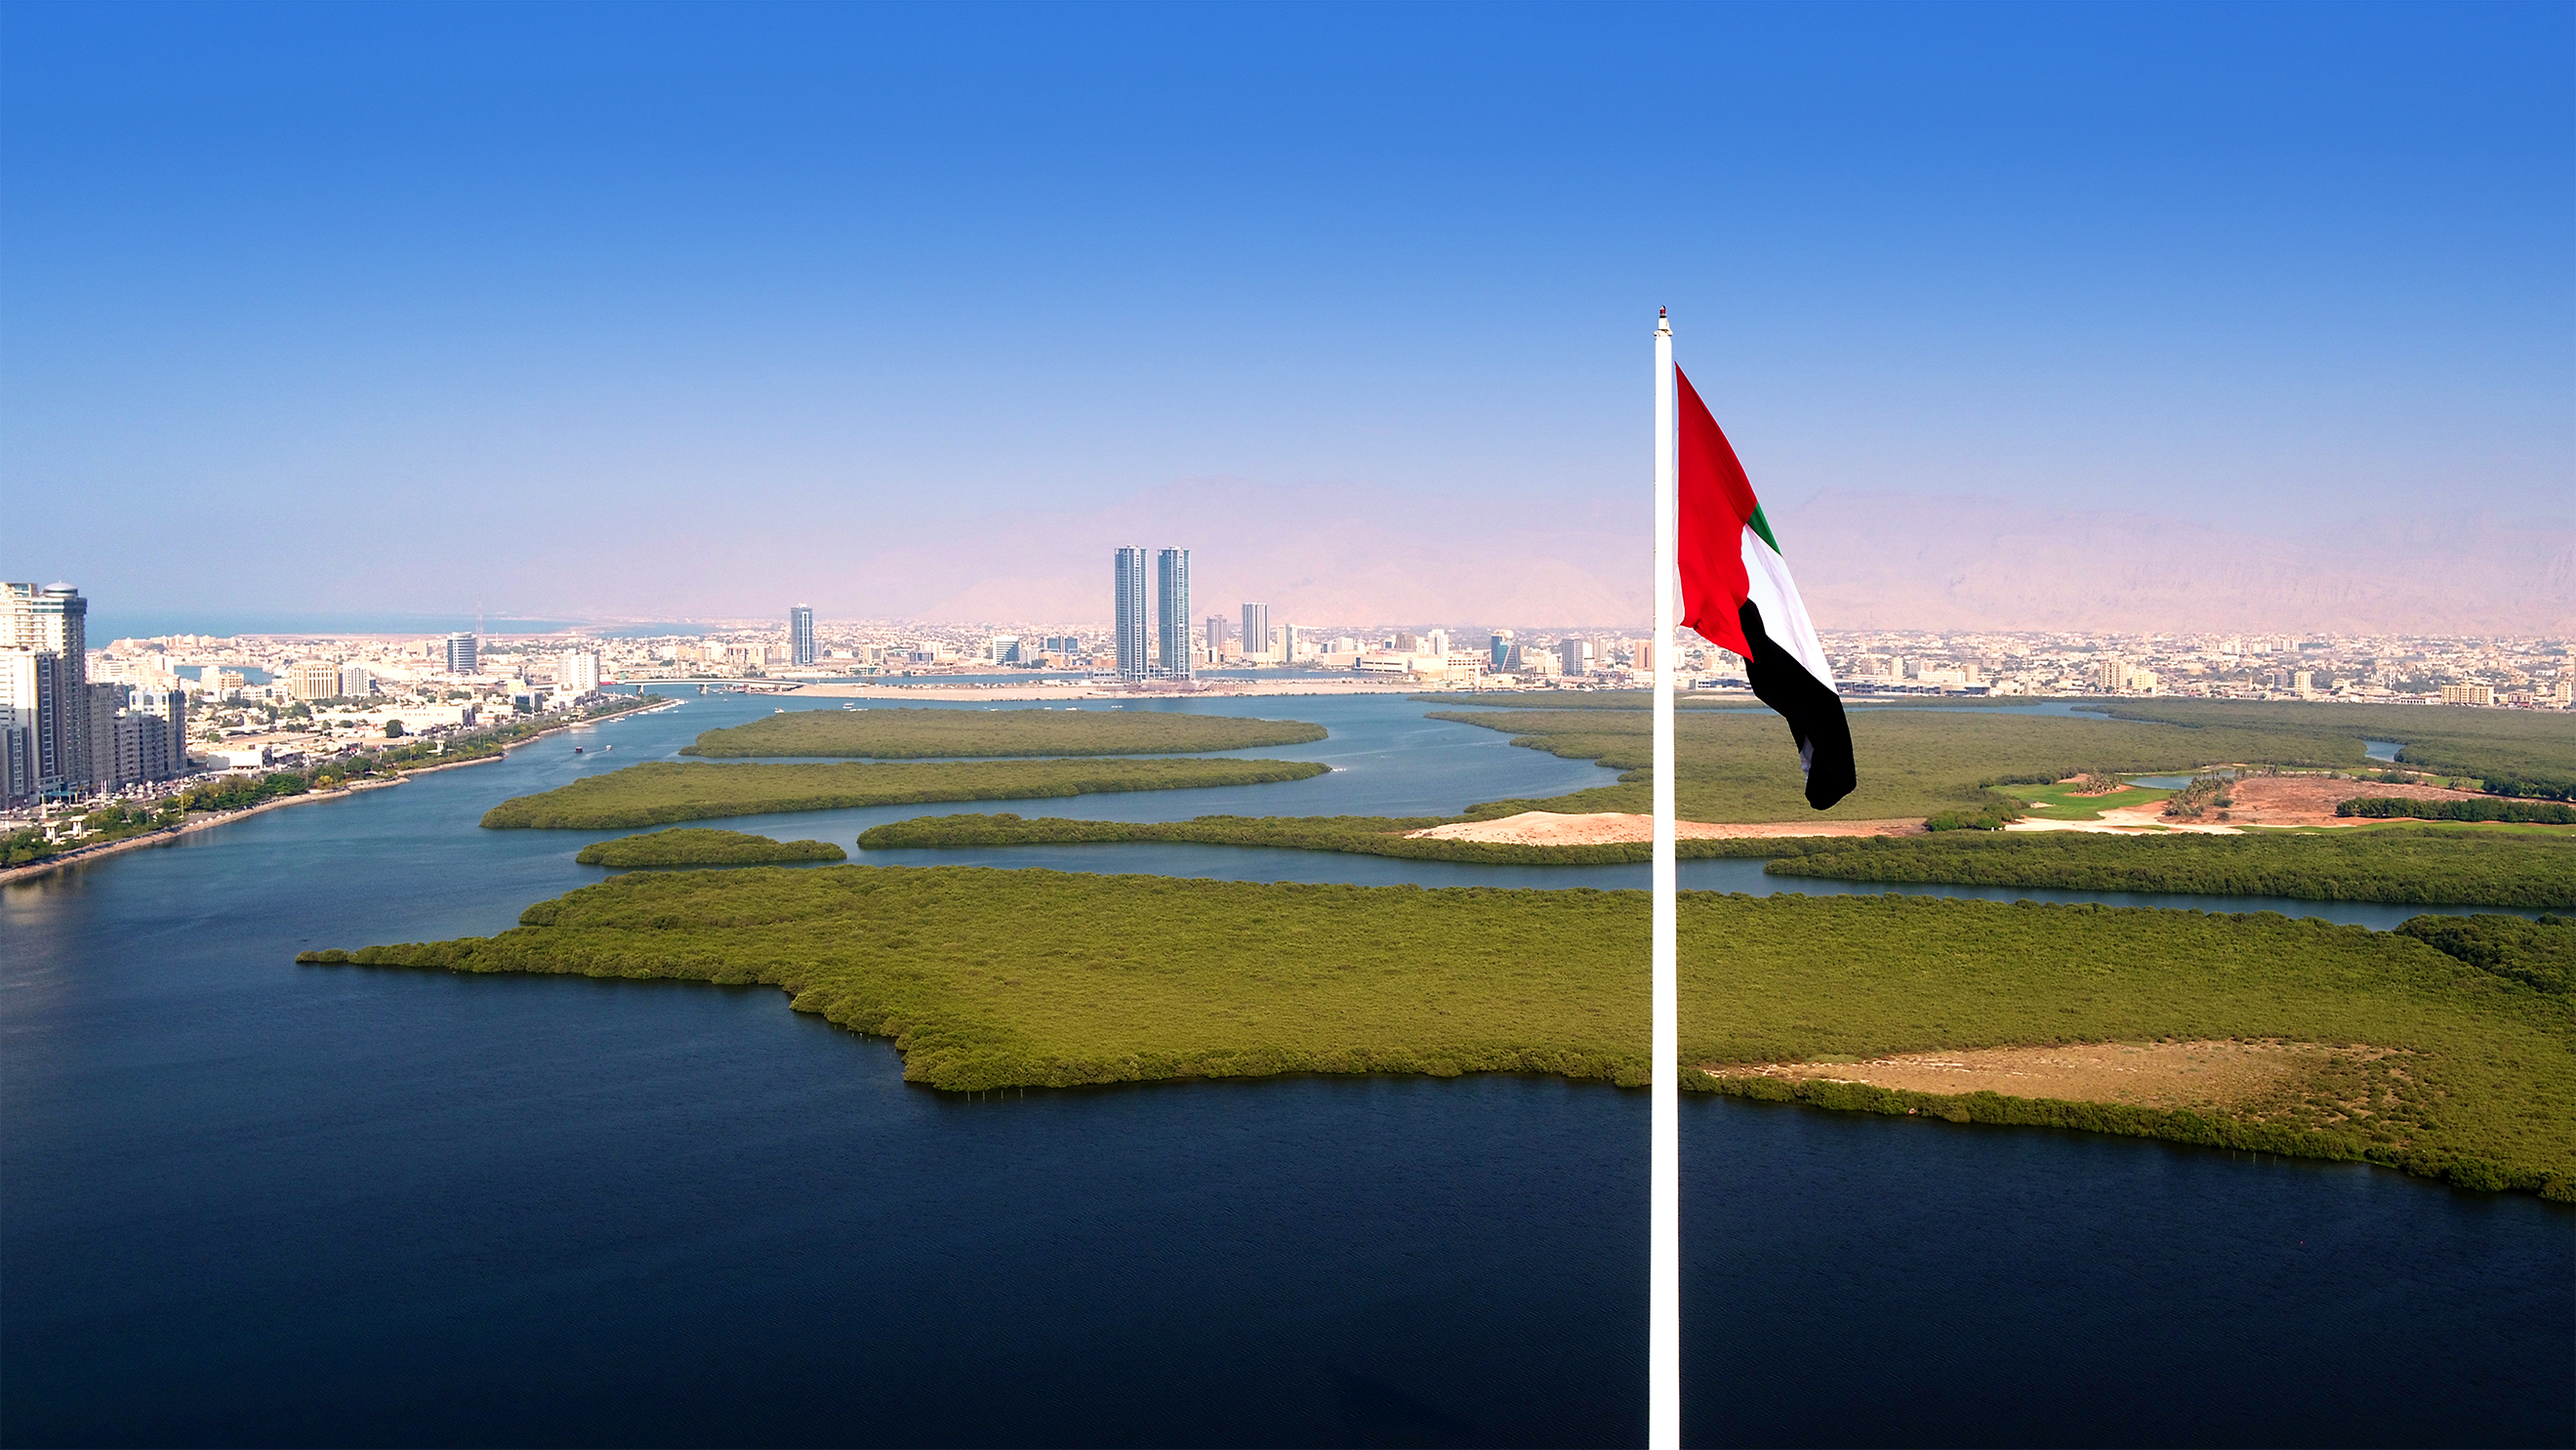 aerial_view_of_rak_city_from_al_qawasim_corniche_flagpole.jpg